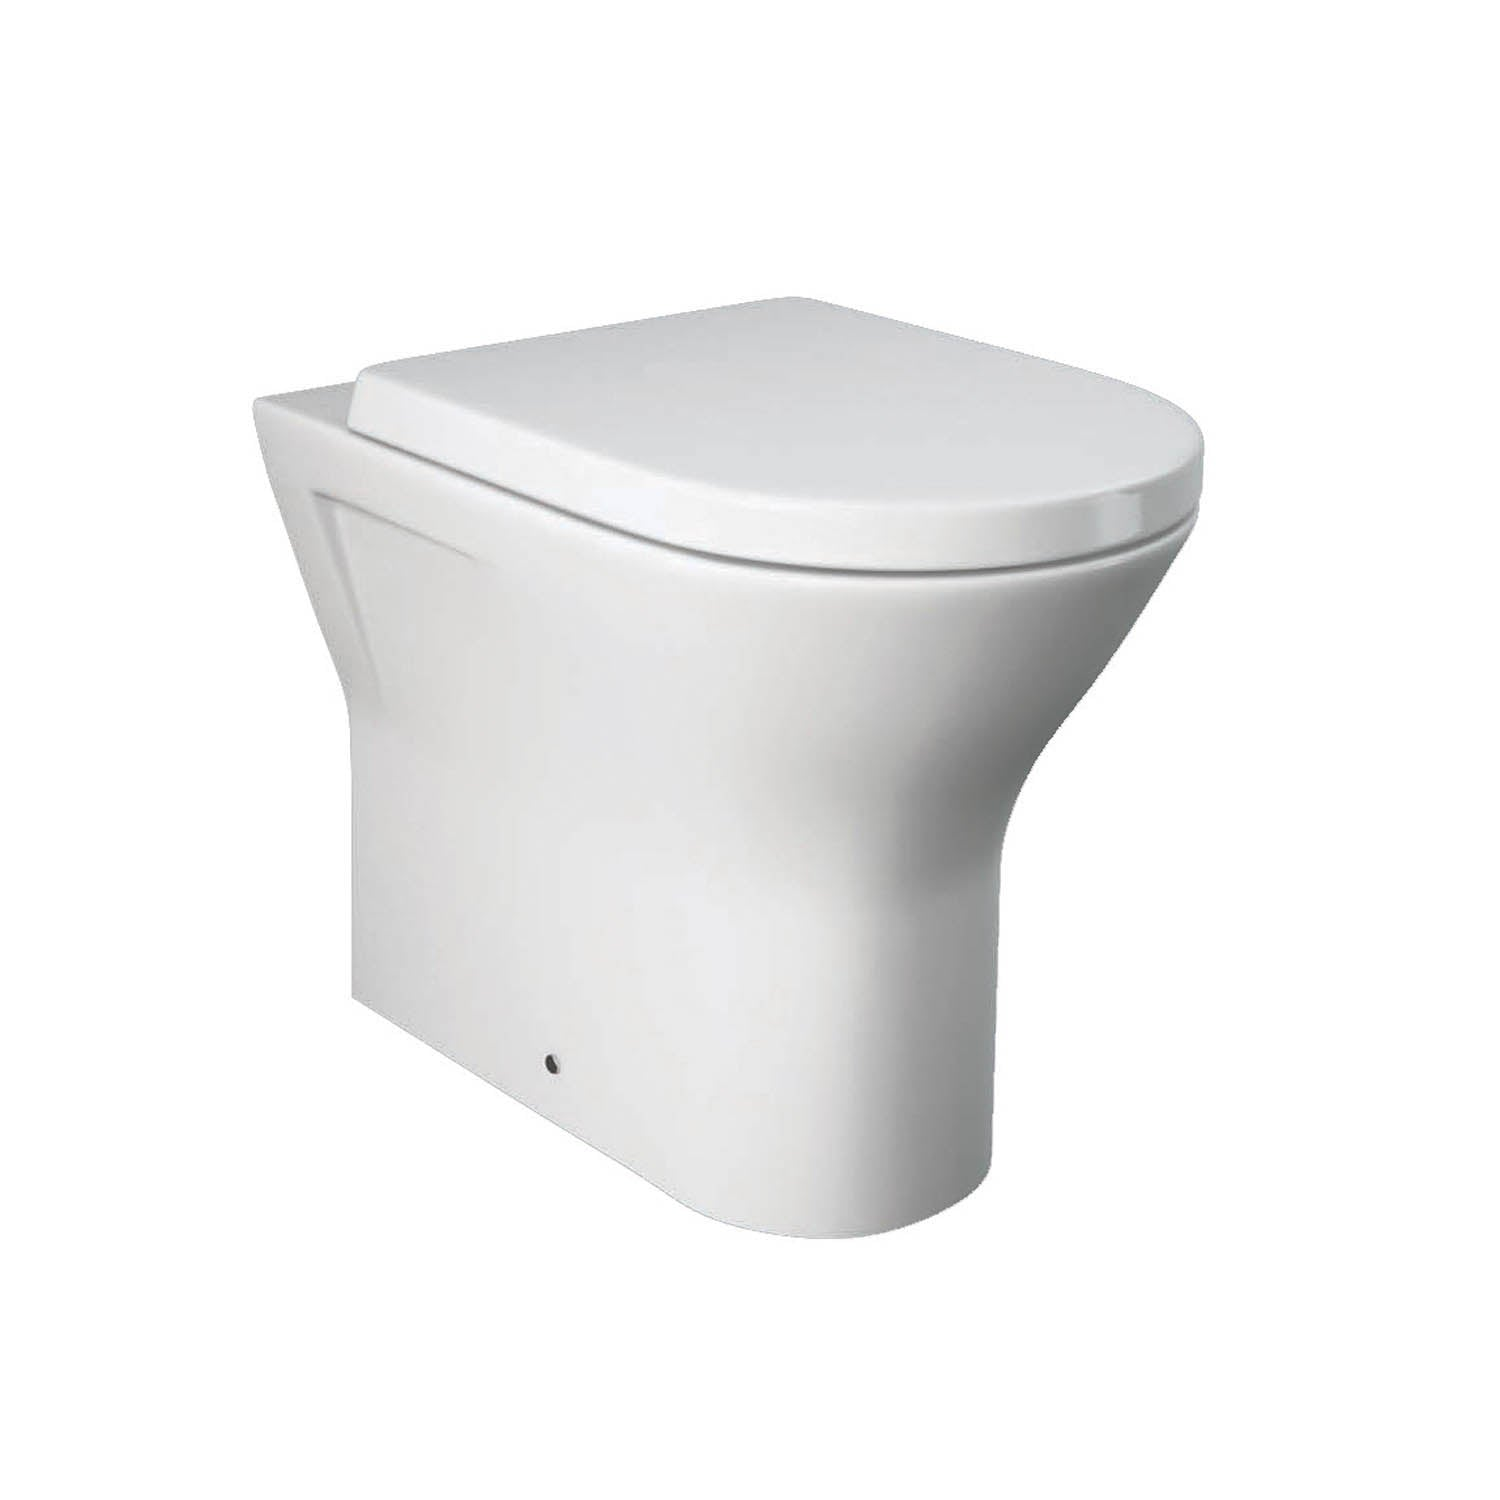 425mm Vesta Comfort Height Back to Wall Toilet with a seat and cover on a white background